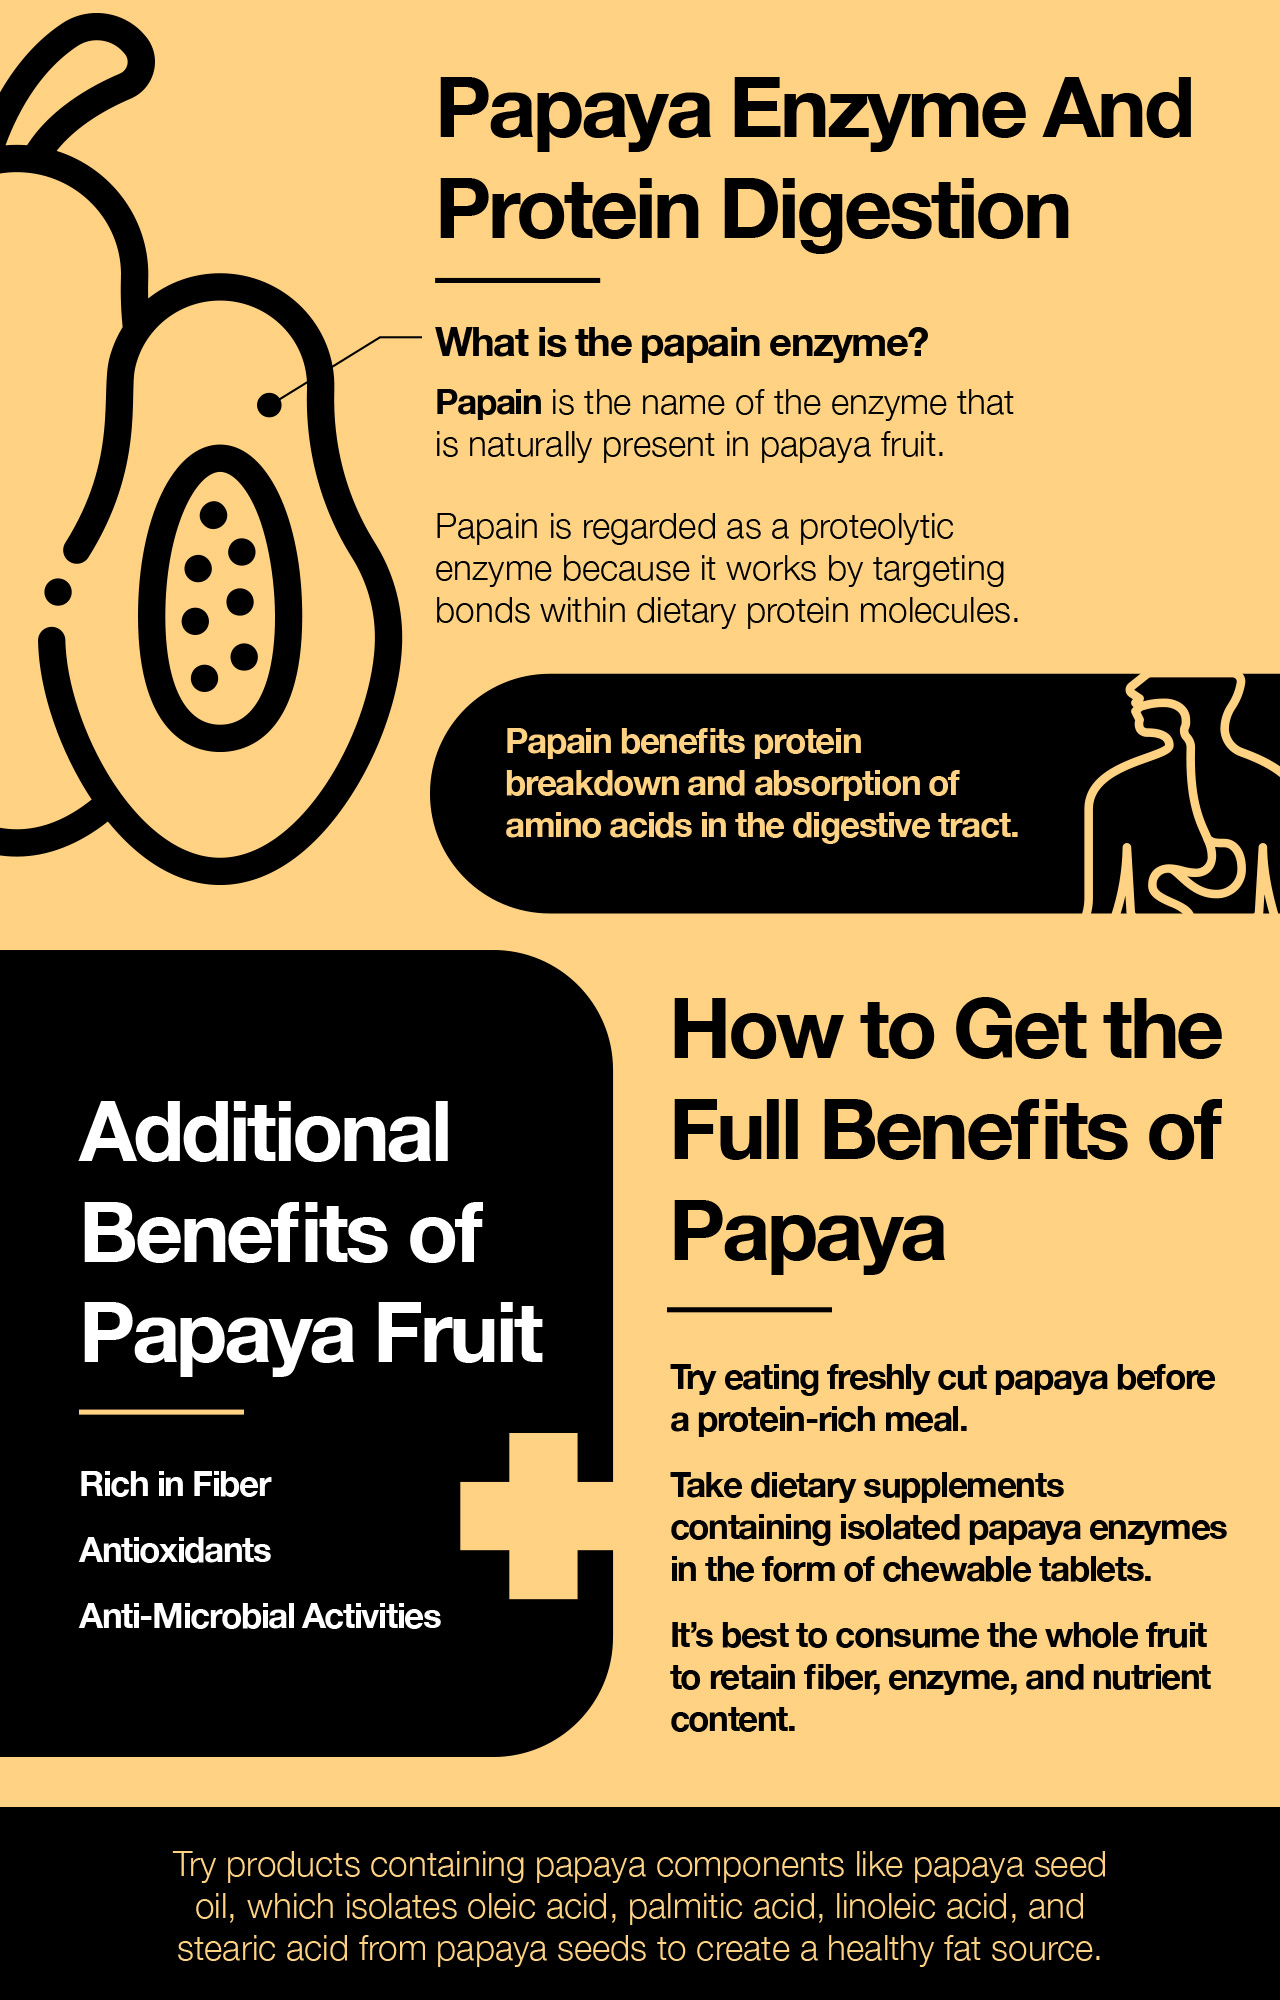 Papaya enzyme and protein digestion